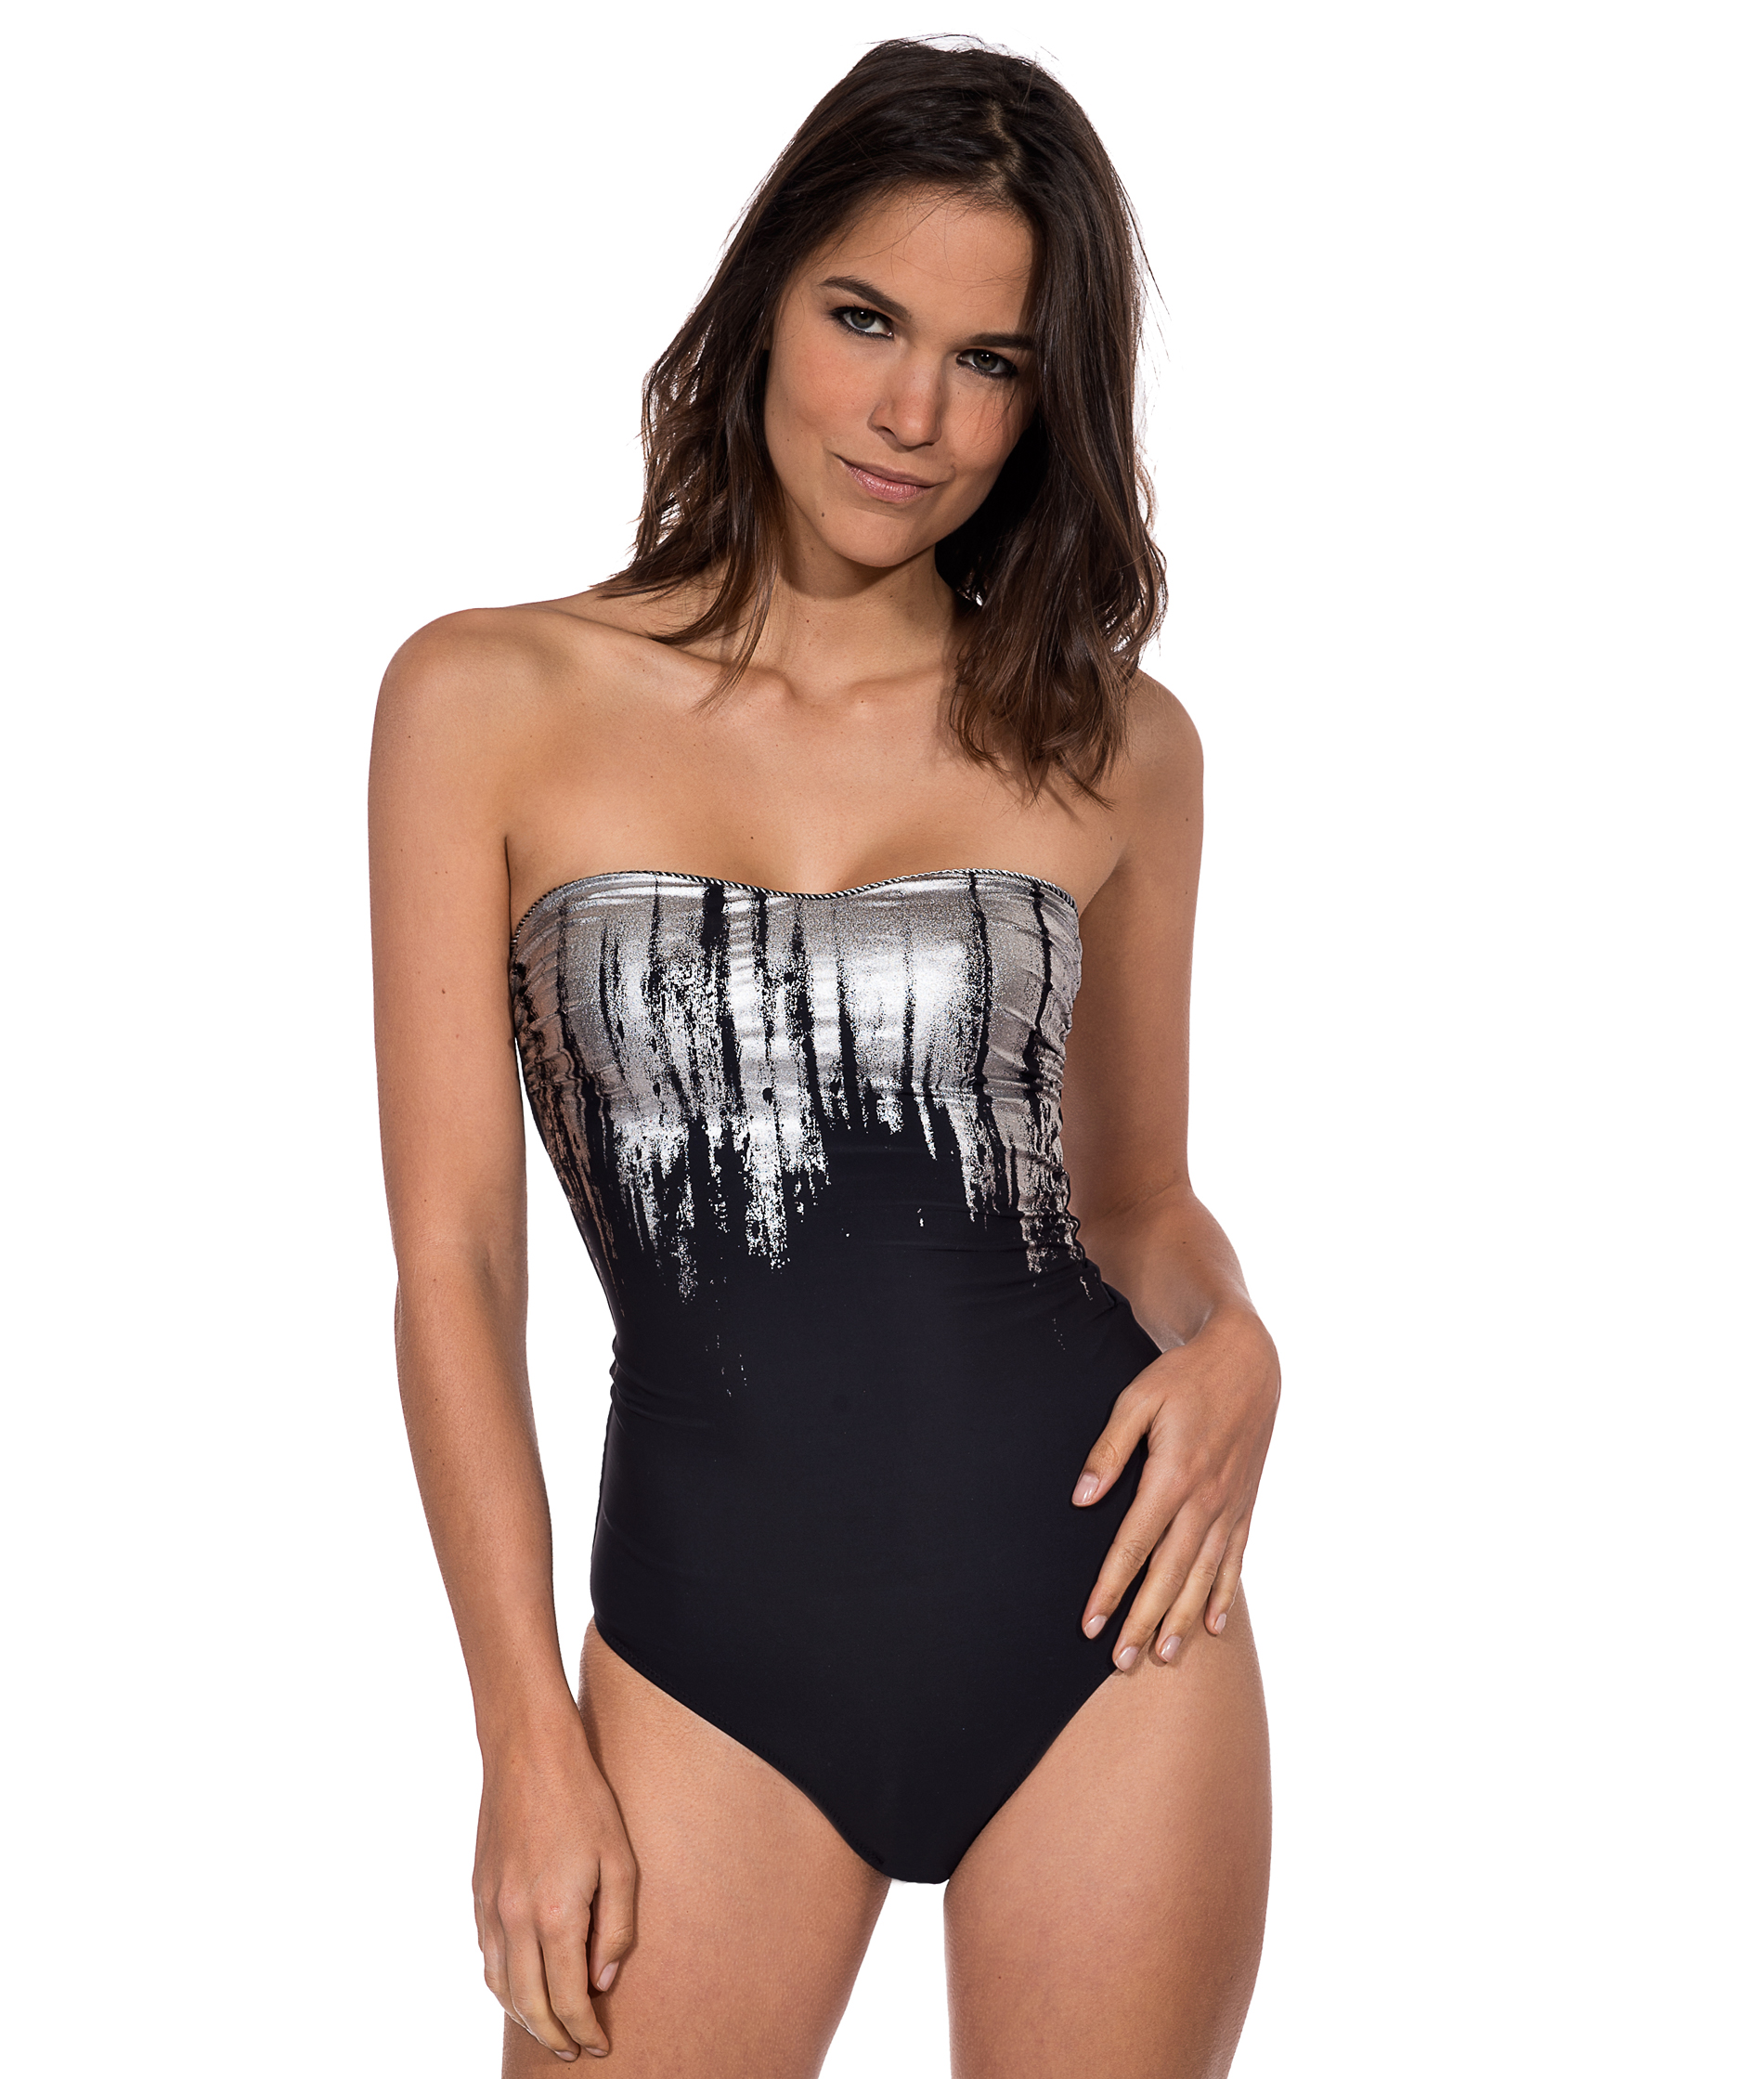 Val D'Azur Ladies Infi Body Honolulu One Piece